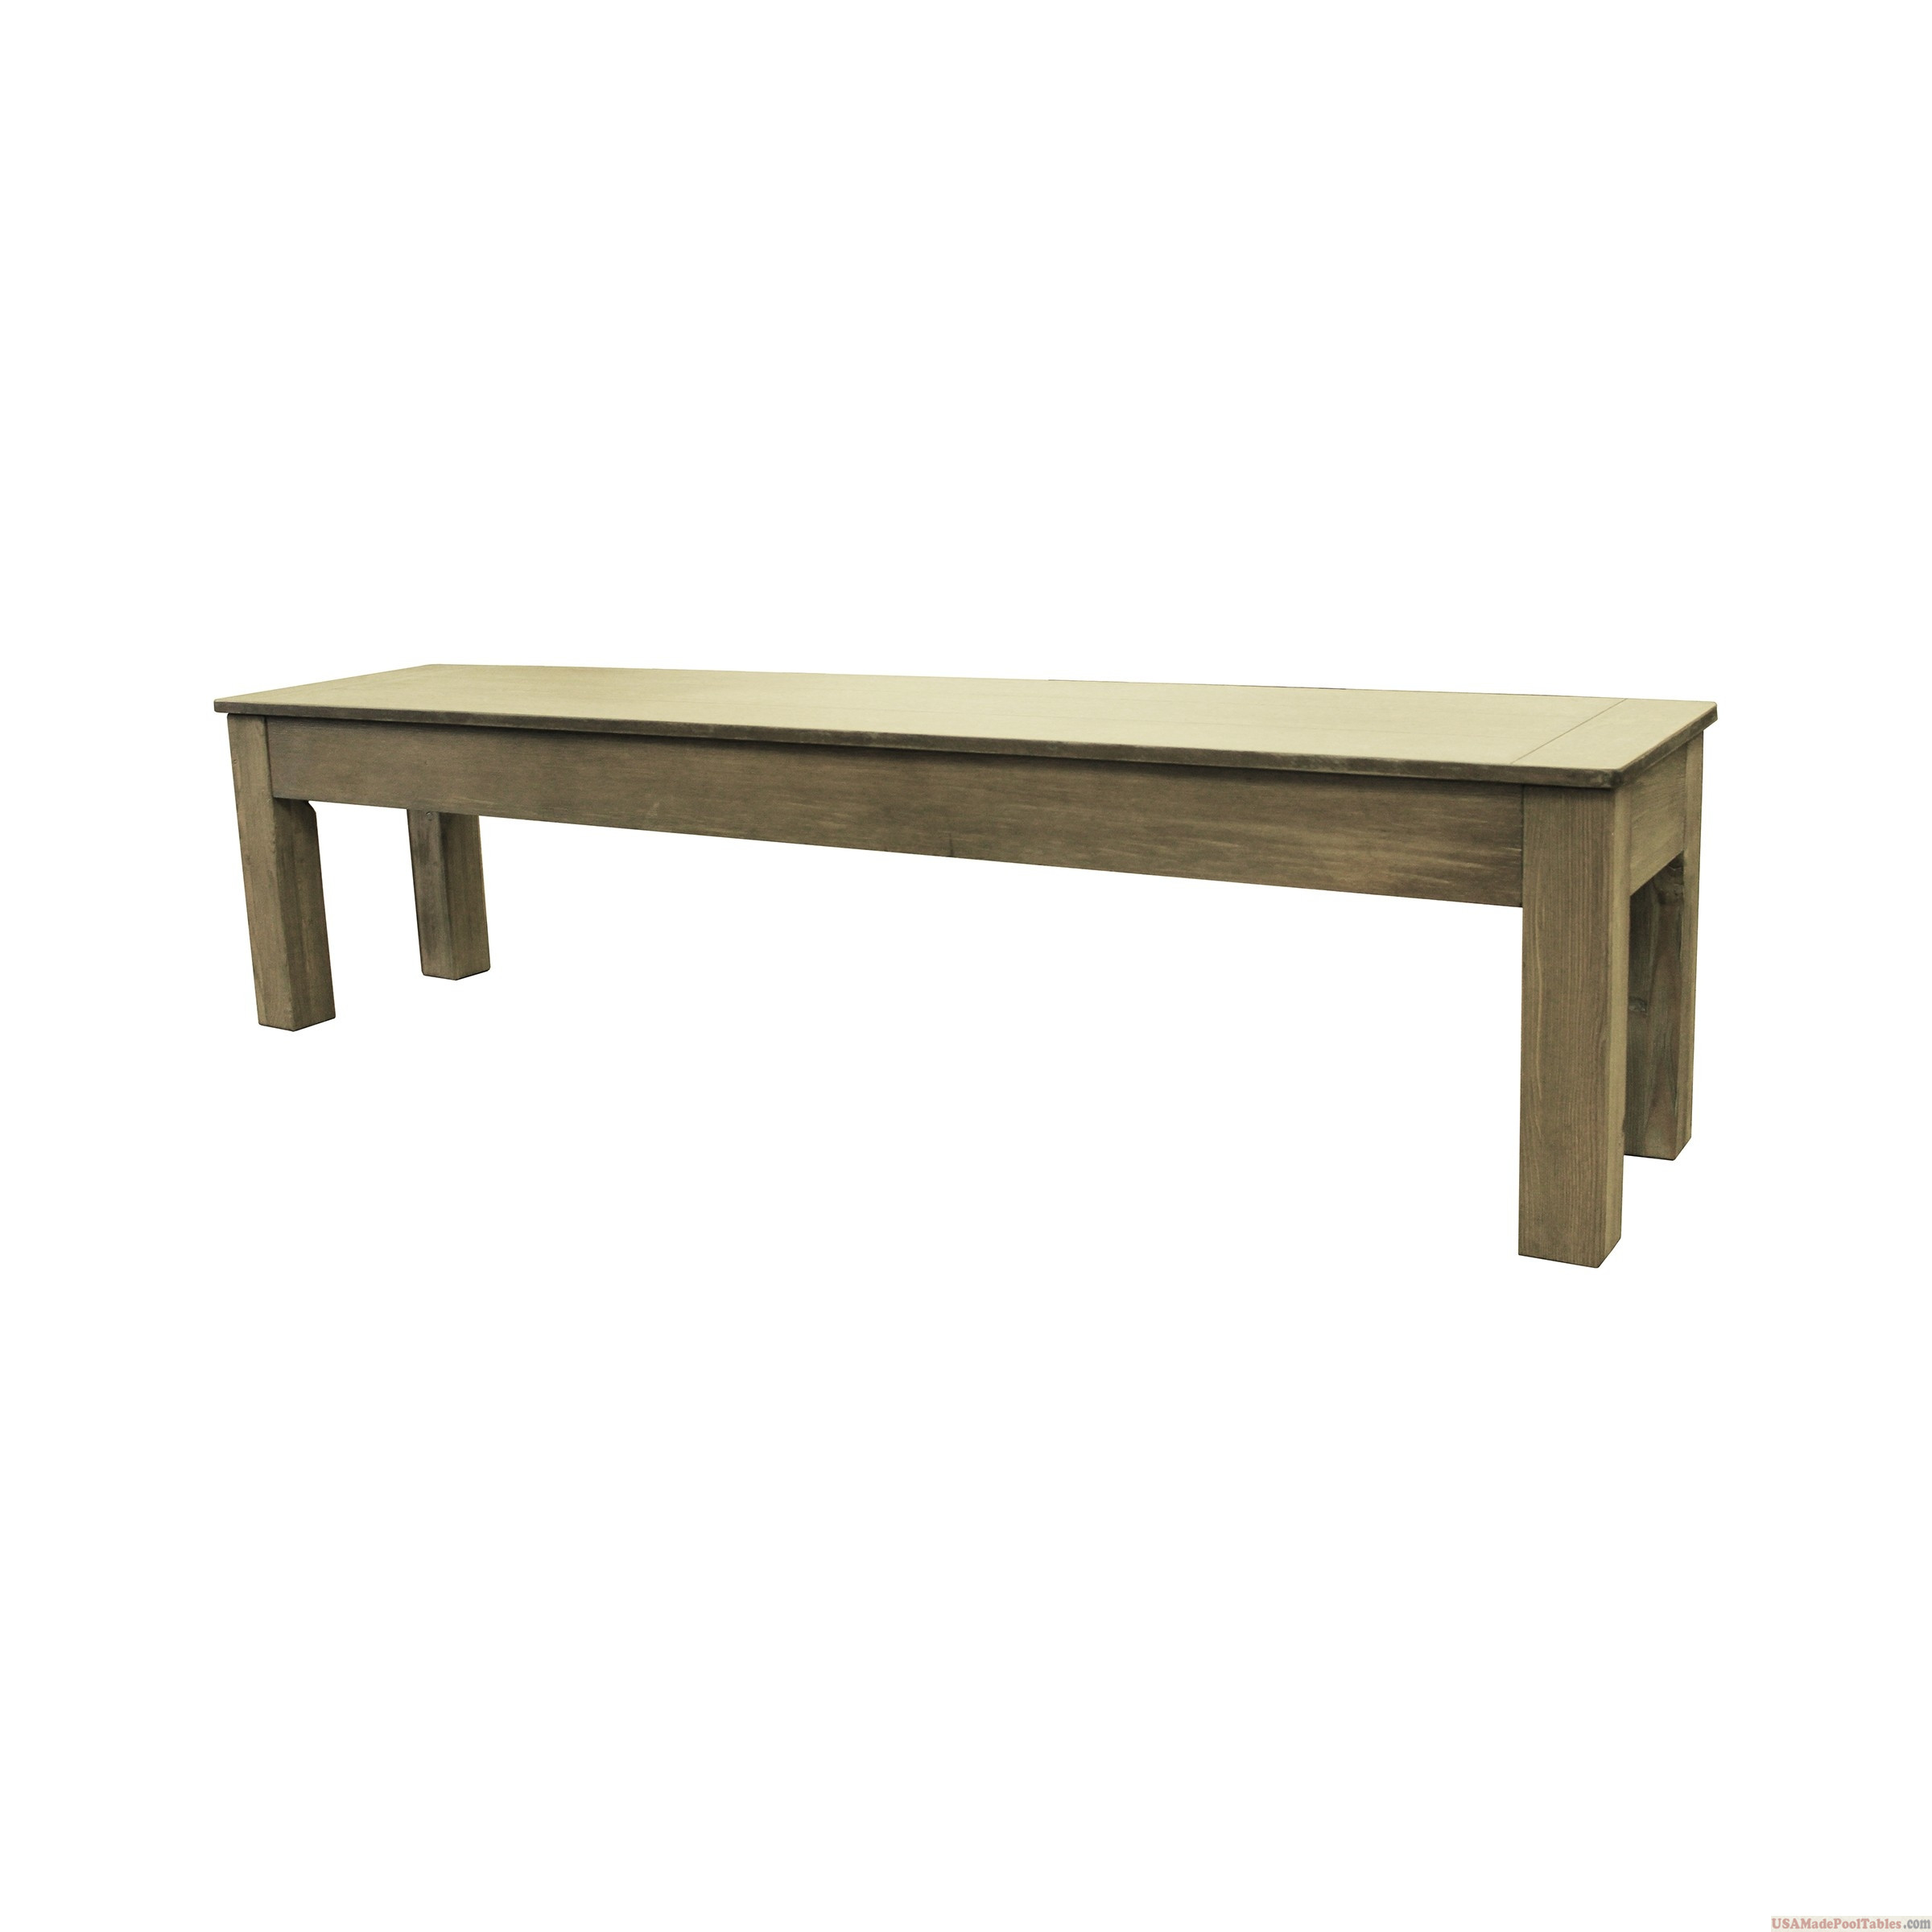 Majestic 76-INCH LONG BENCH